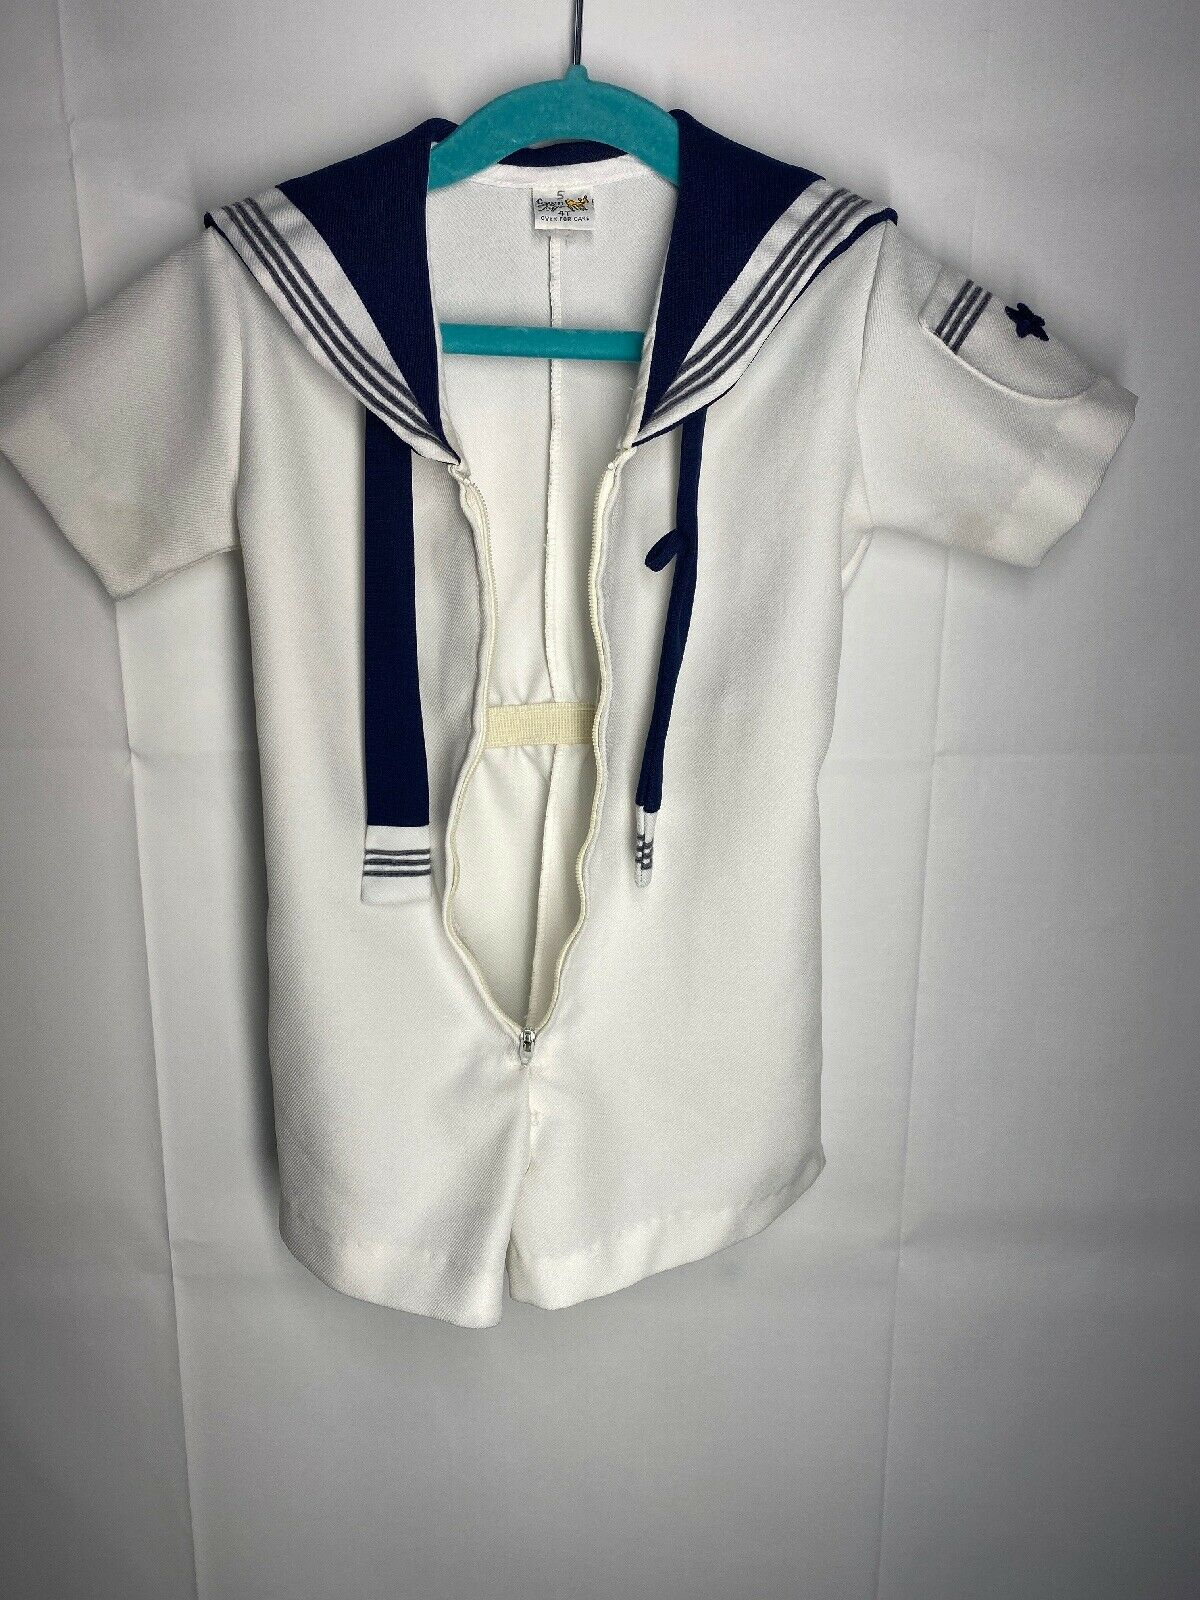 Romper Nautical Sailor Vintage 4T - image 11